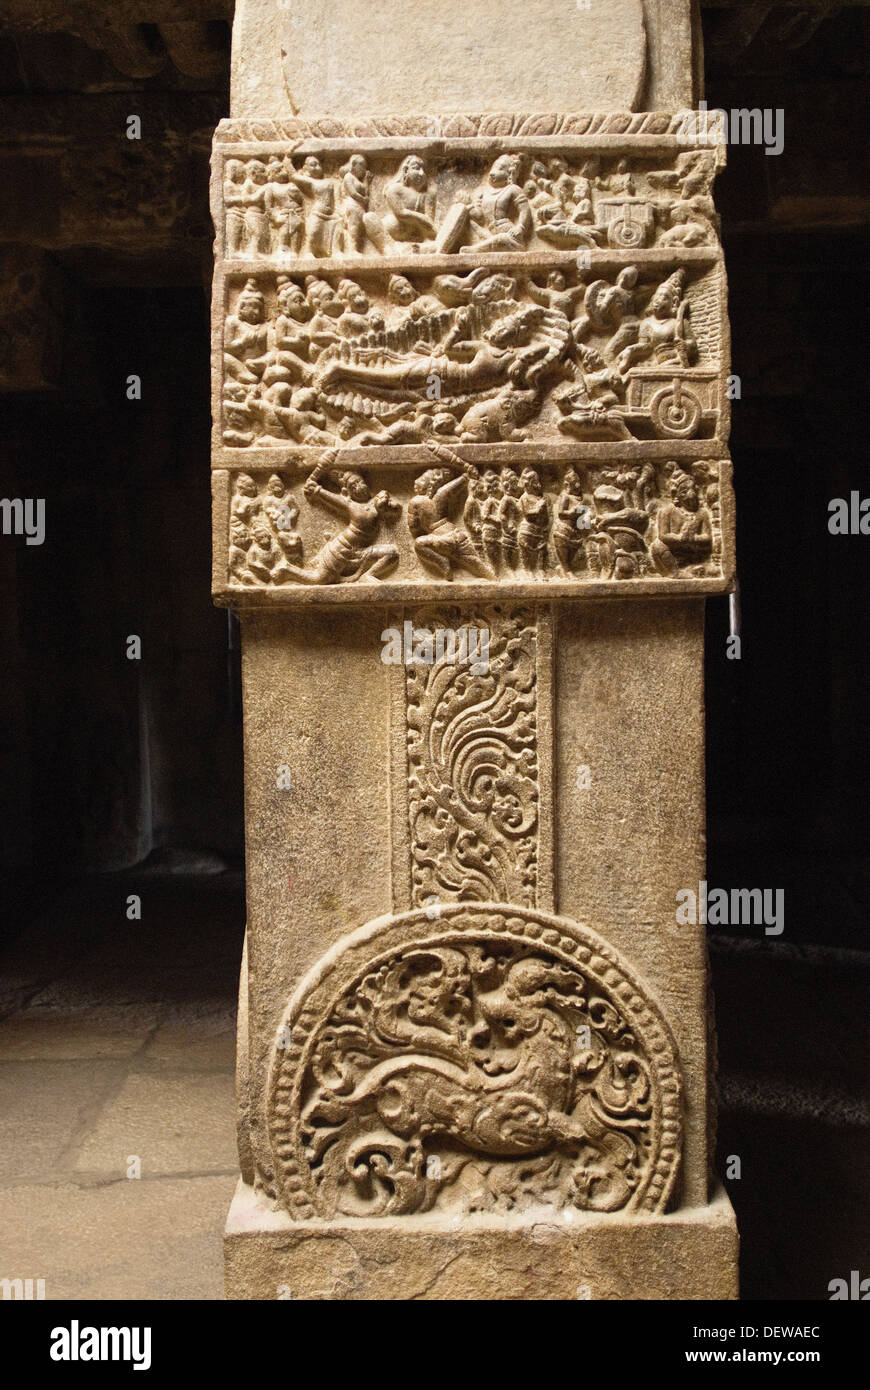 Carvings in a Column -Scene from the Mahabharata  in Virupaksha Temple in Pattadakal. Detailed scenes from the epics - Stock Image